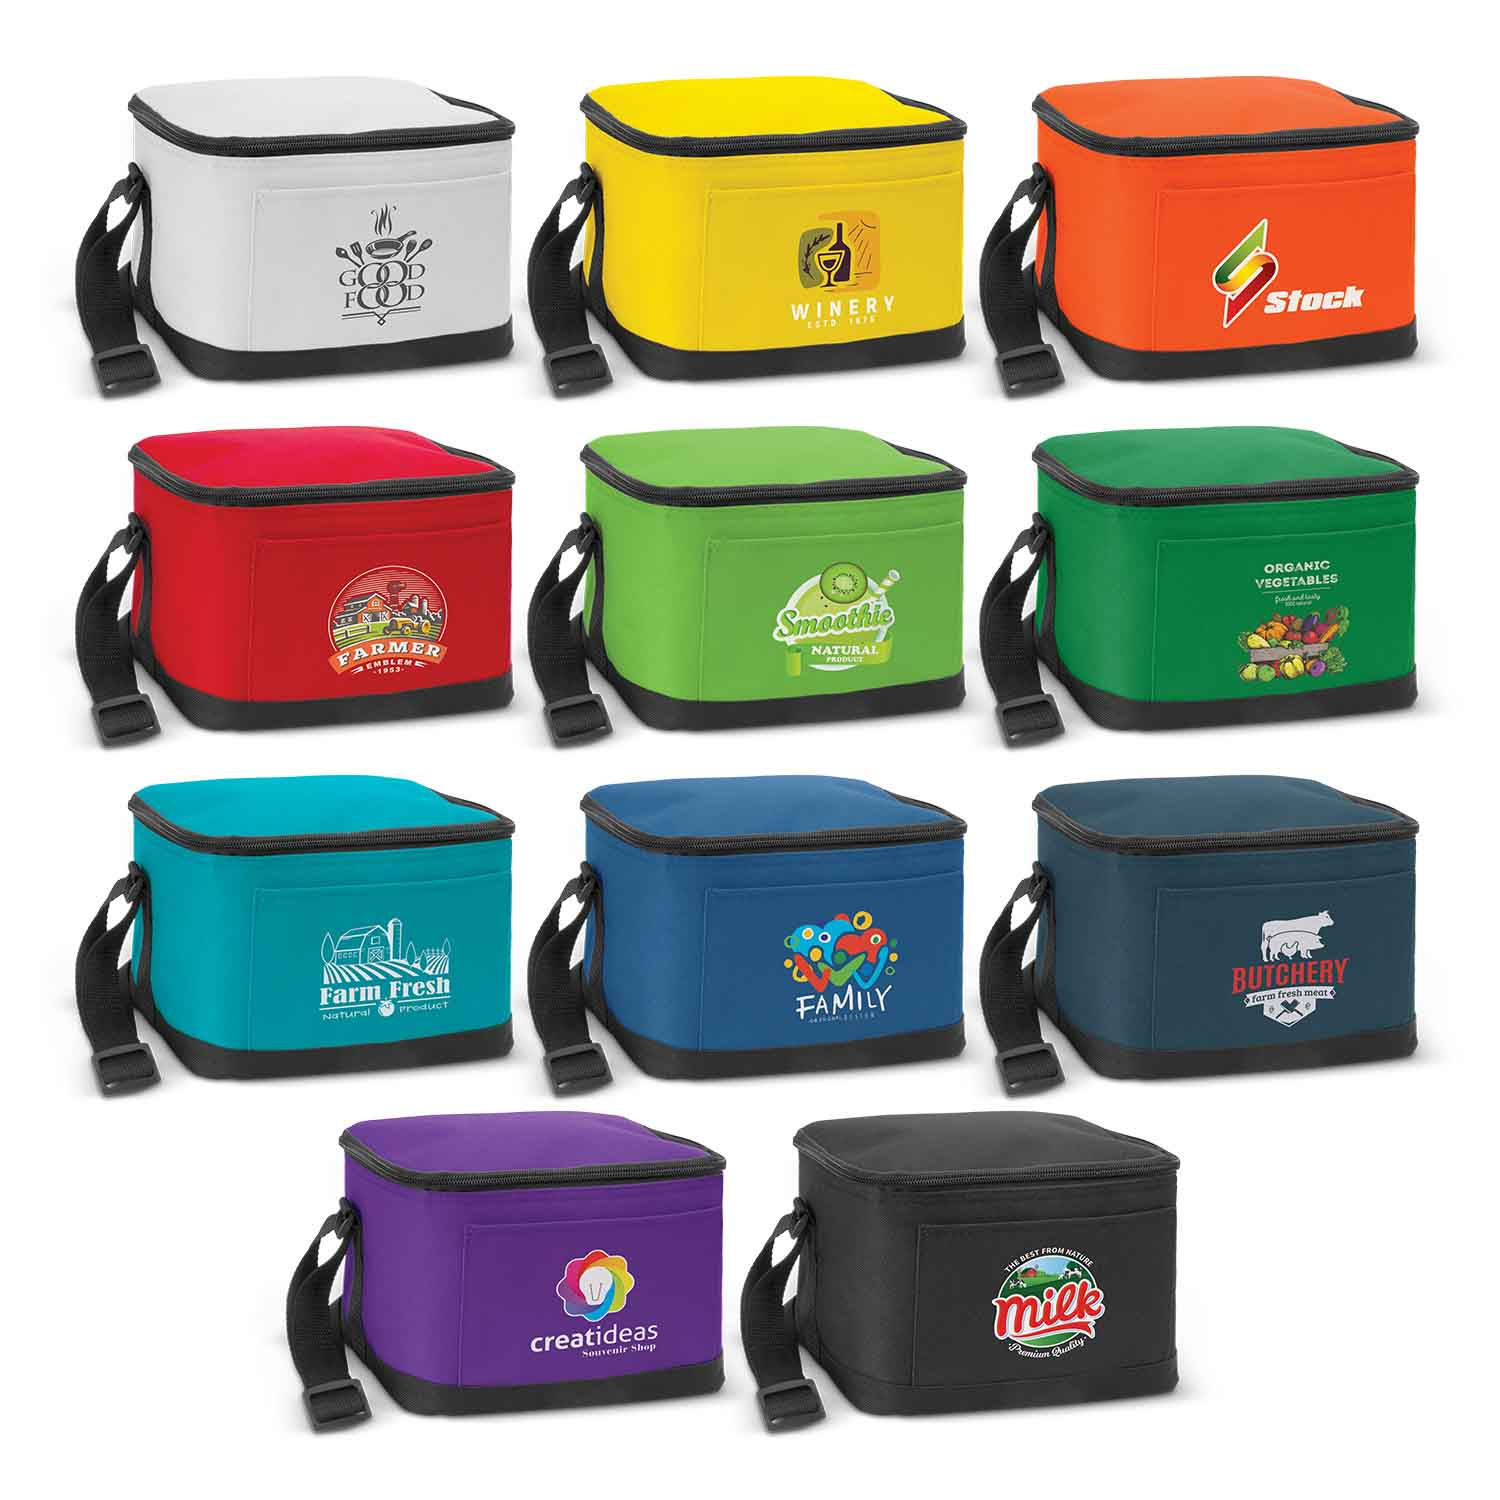 Custom Bathurst Cooler Bags in Perth